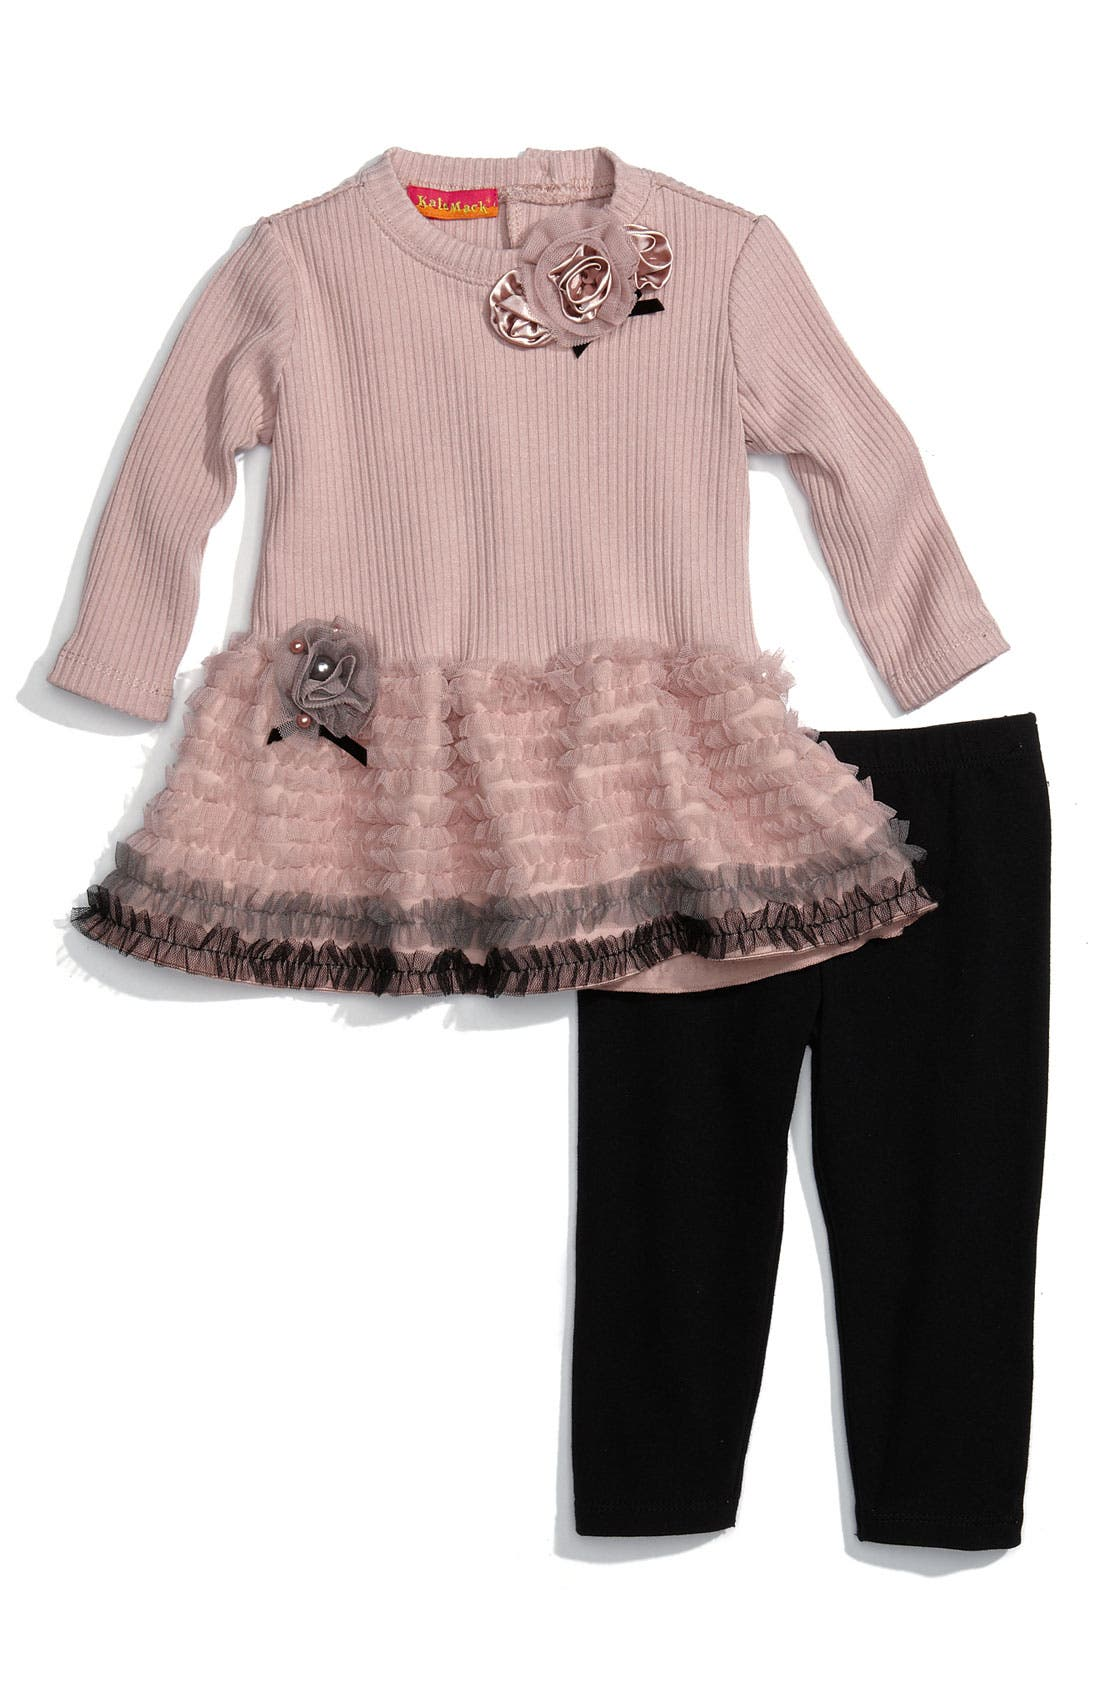 Alternate Image 1 Selected - Biscotti Ruffle Tunic & Legging Set (Infant)